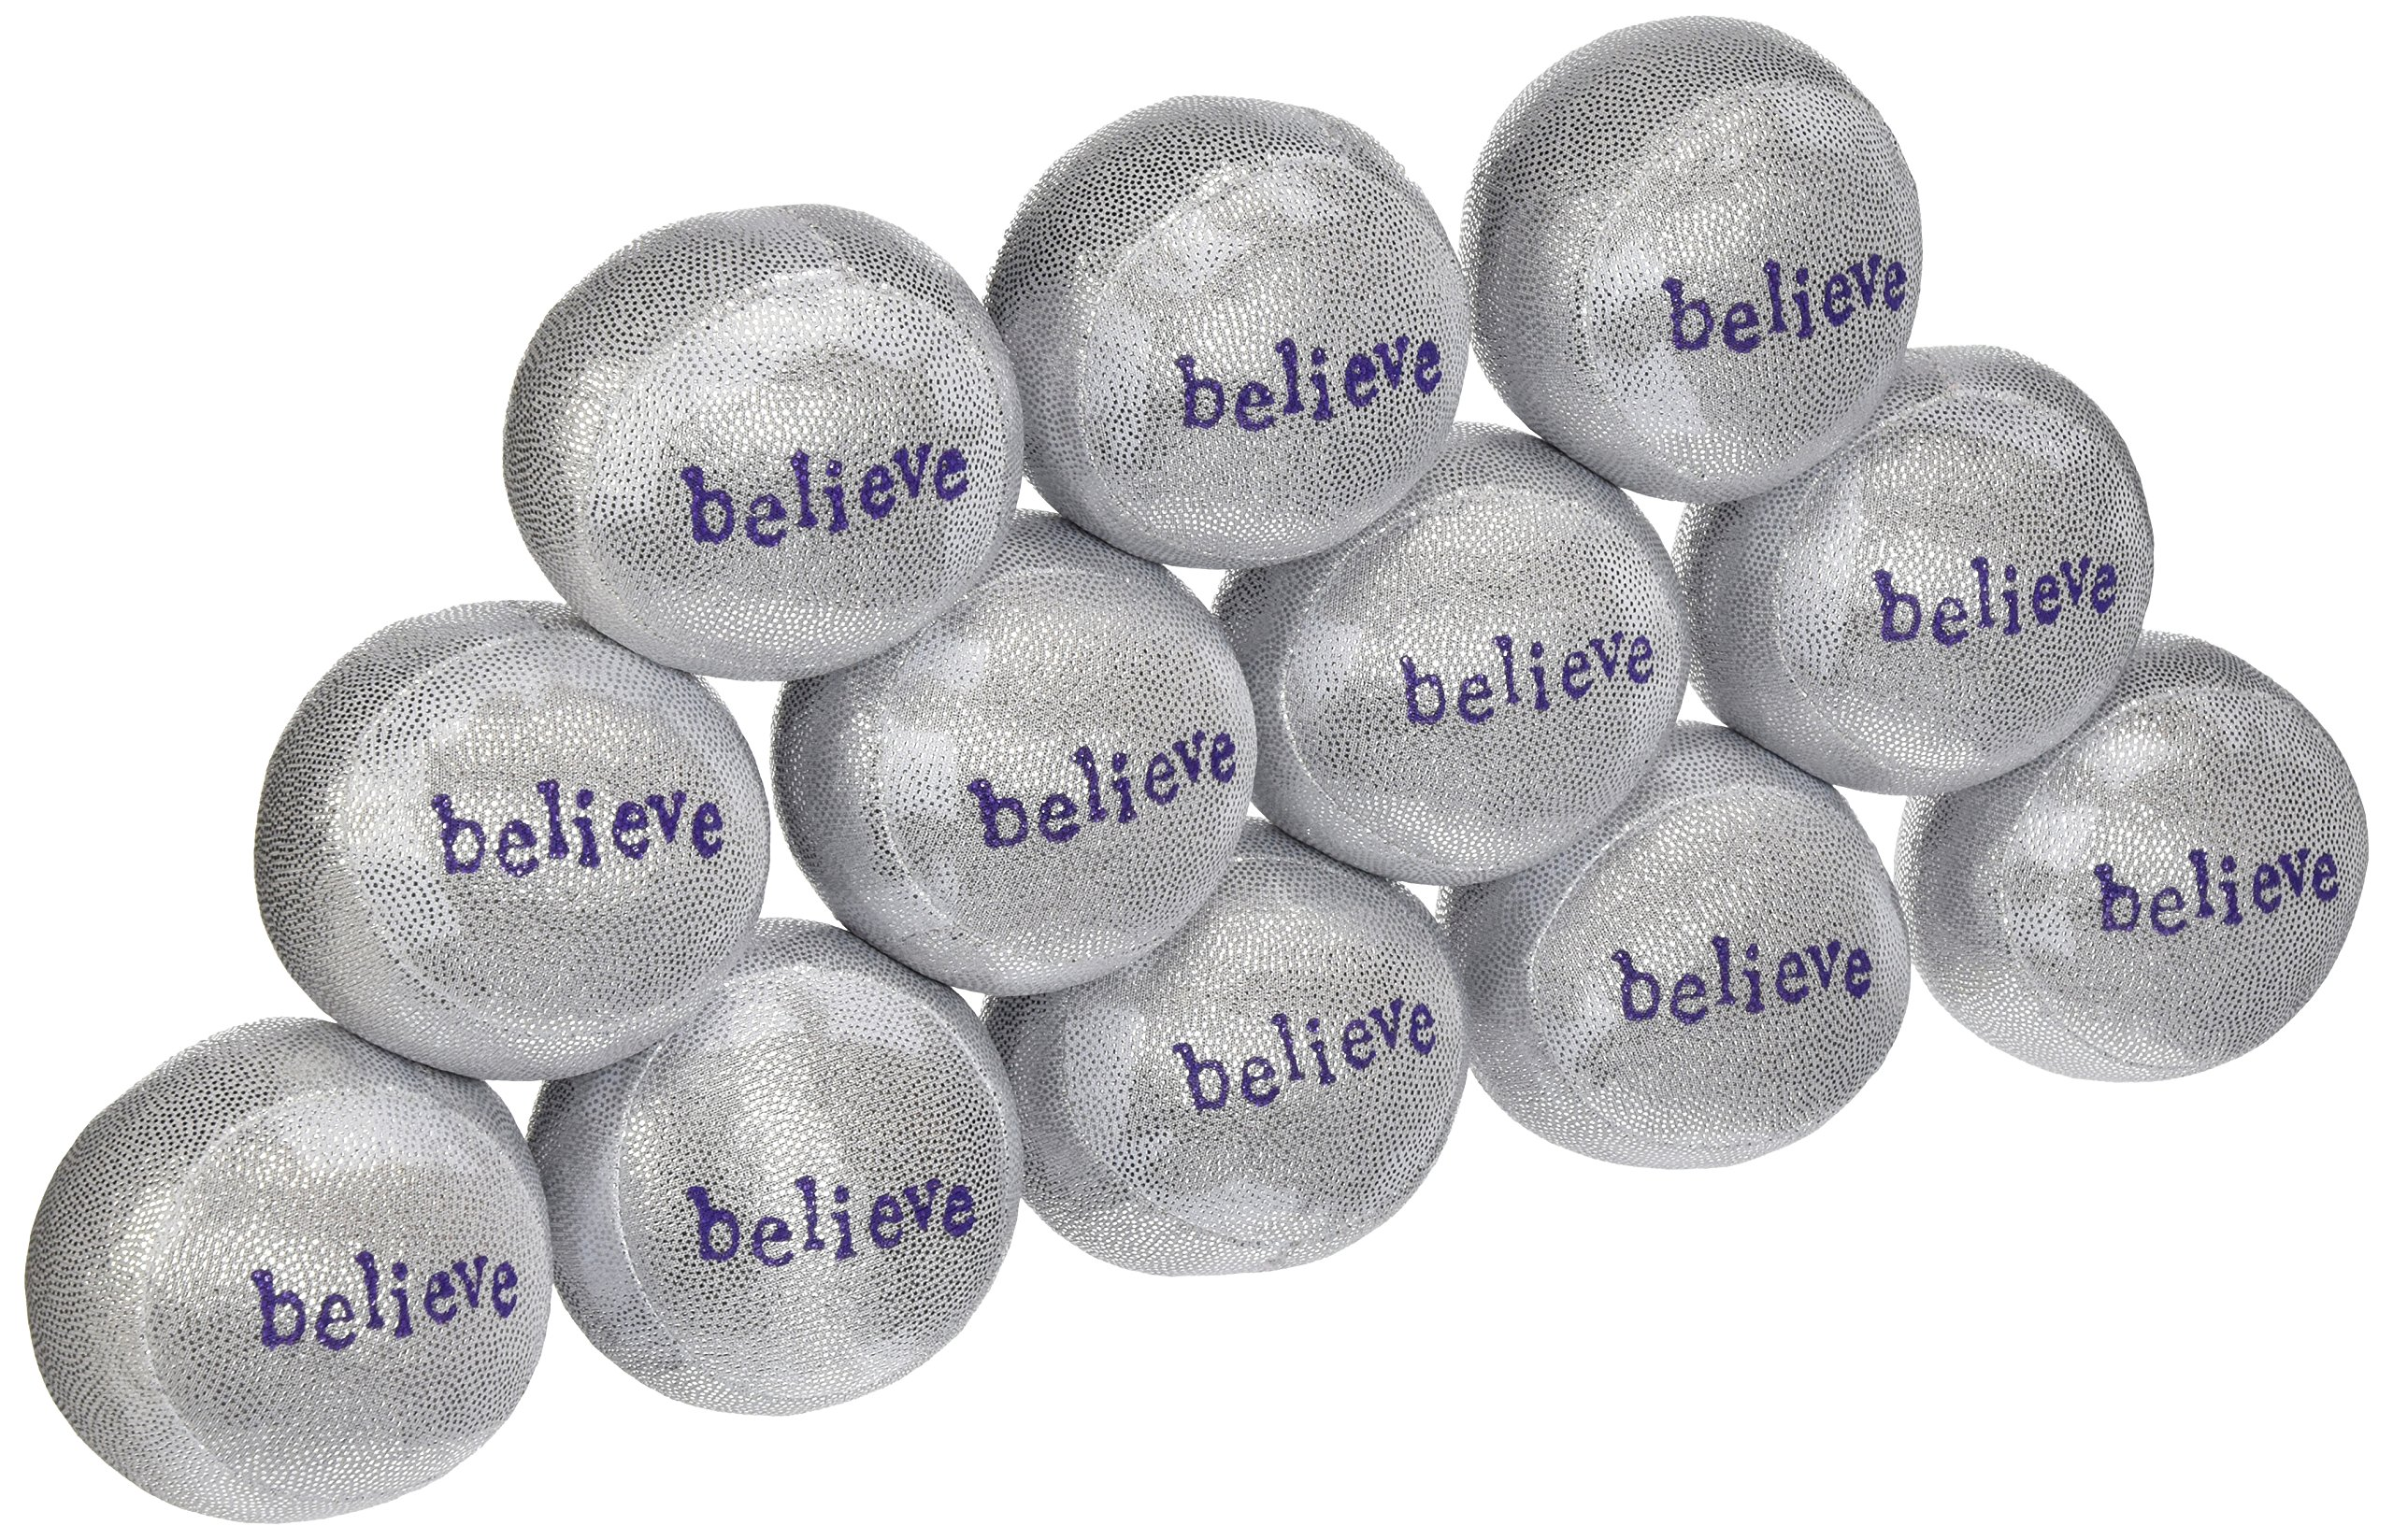 Lavender Luvies Lavender Stress Balls, Silver Believe - 12 Pack